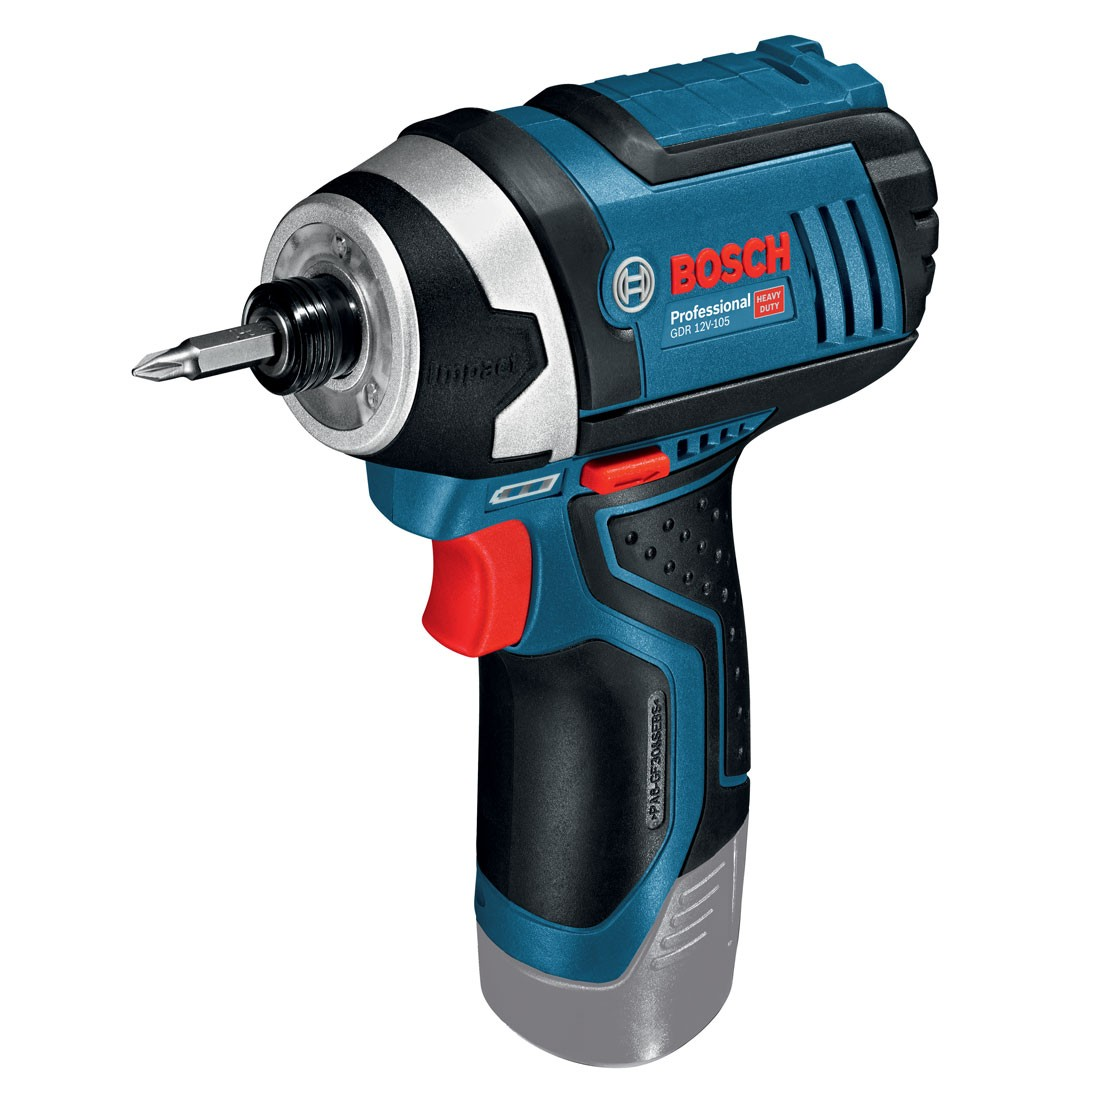 bosch gdr 12v 105 professional cordless impact driver body only powertool world. Black Bedroom Furniture Sets. Home Design Ideas